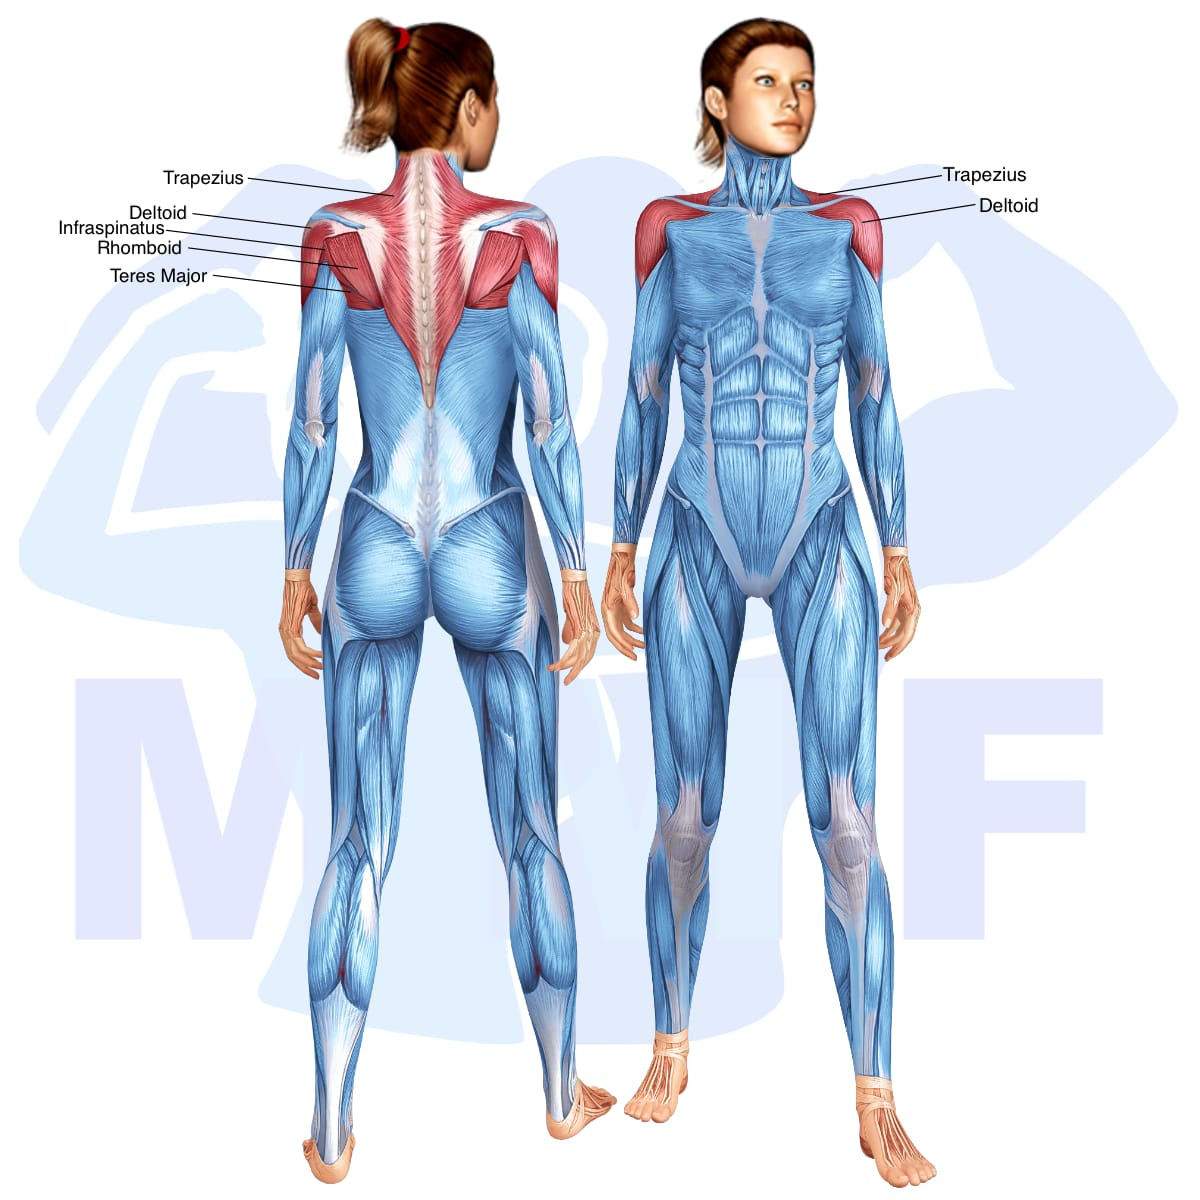 Skeletal muscle systems for a muscular woman, with muscles highlighted in red that are use during resistance band bent over rear lateral raises.